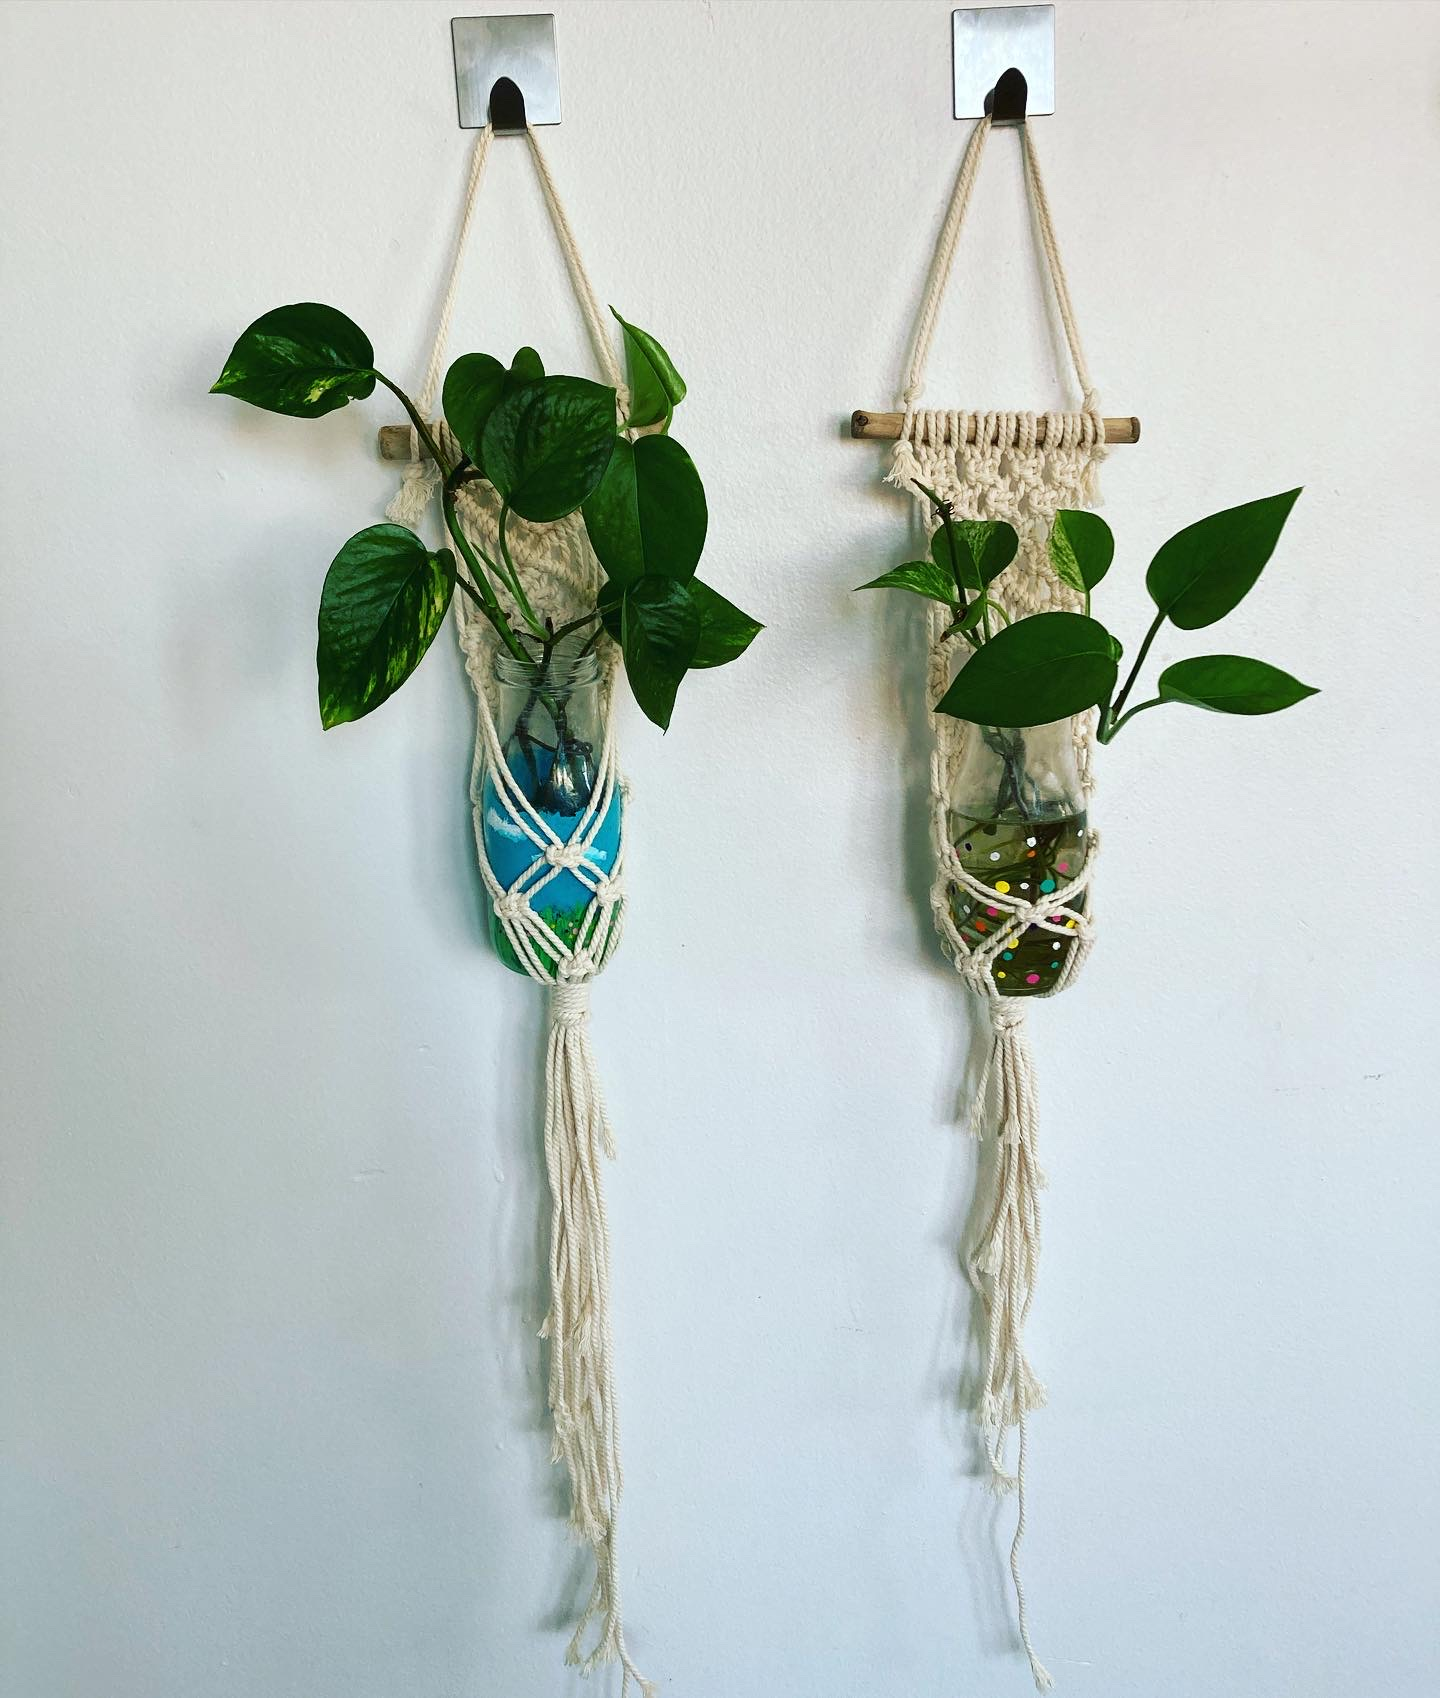 two small beige macrame hangars, each holds a small bottle filled with watter and a plant cutting. The bottle on the left is painted with a custom design